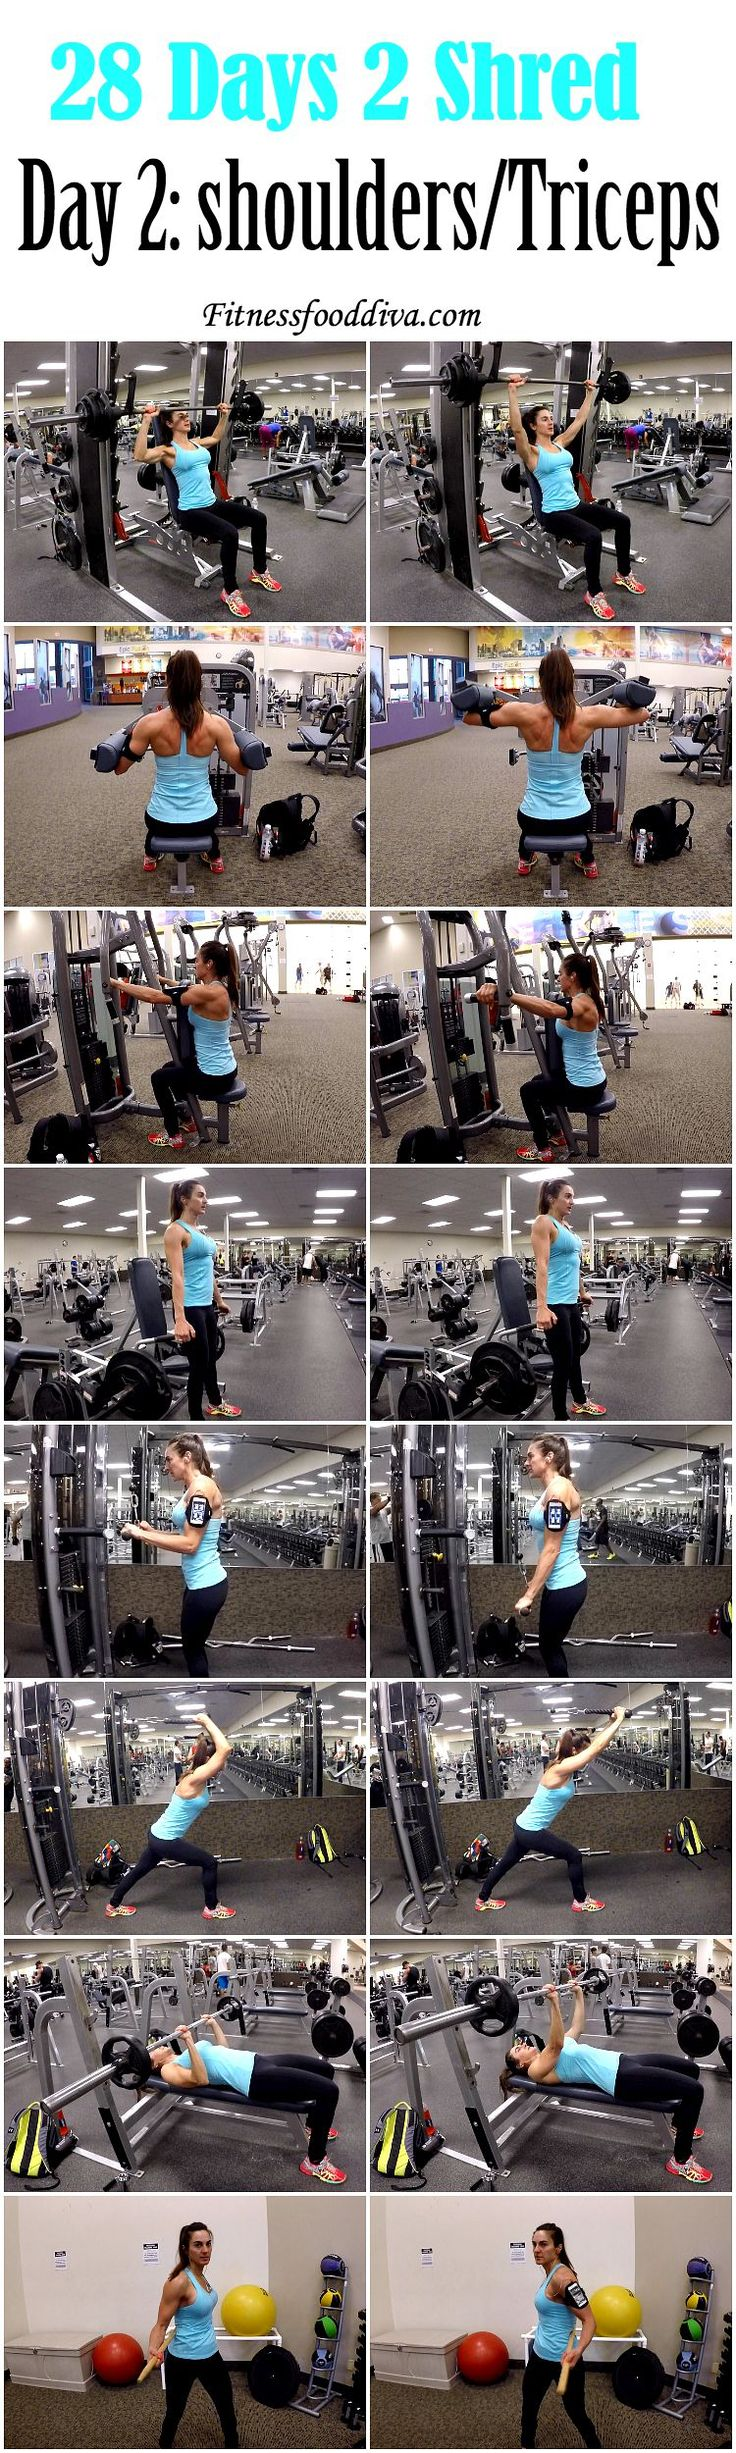 DAY 2: SHOULDER/TRICEPS  6/7-both of us; me- single and double leg quads, single and double hamstring, abd/add, leg press, calves, hamstring curls